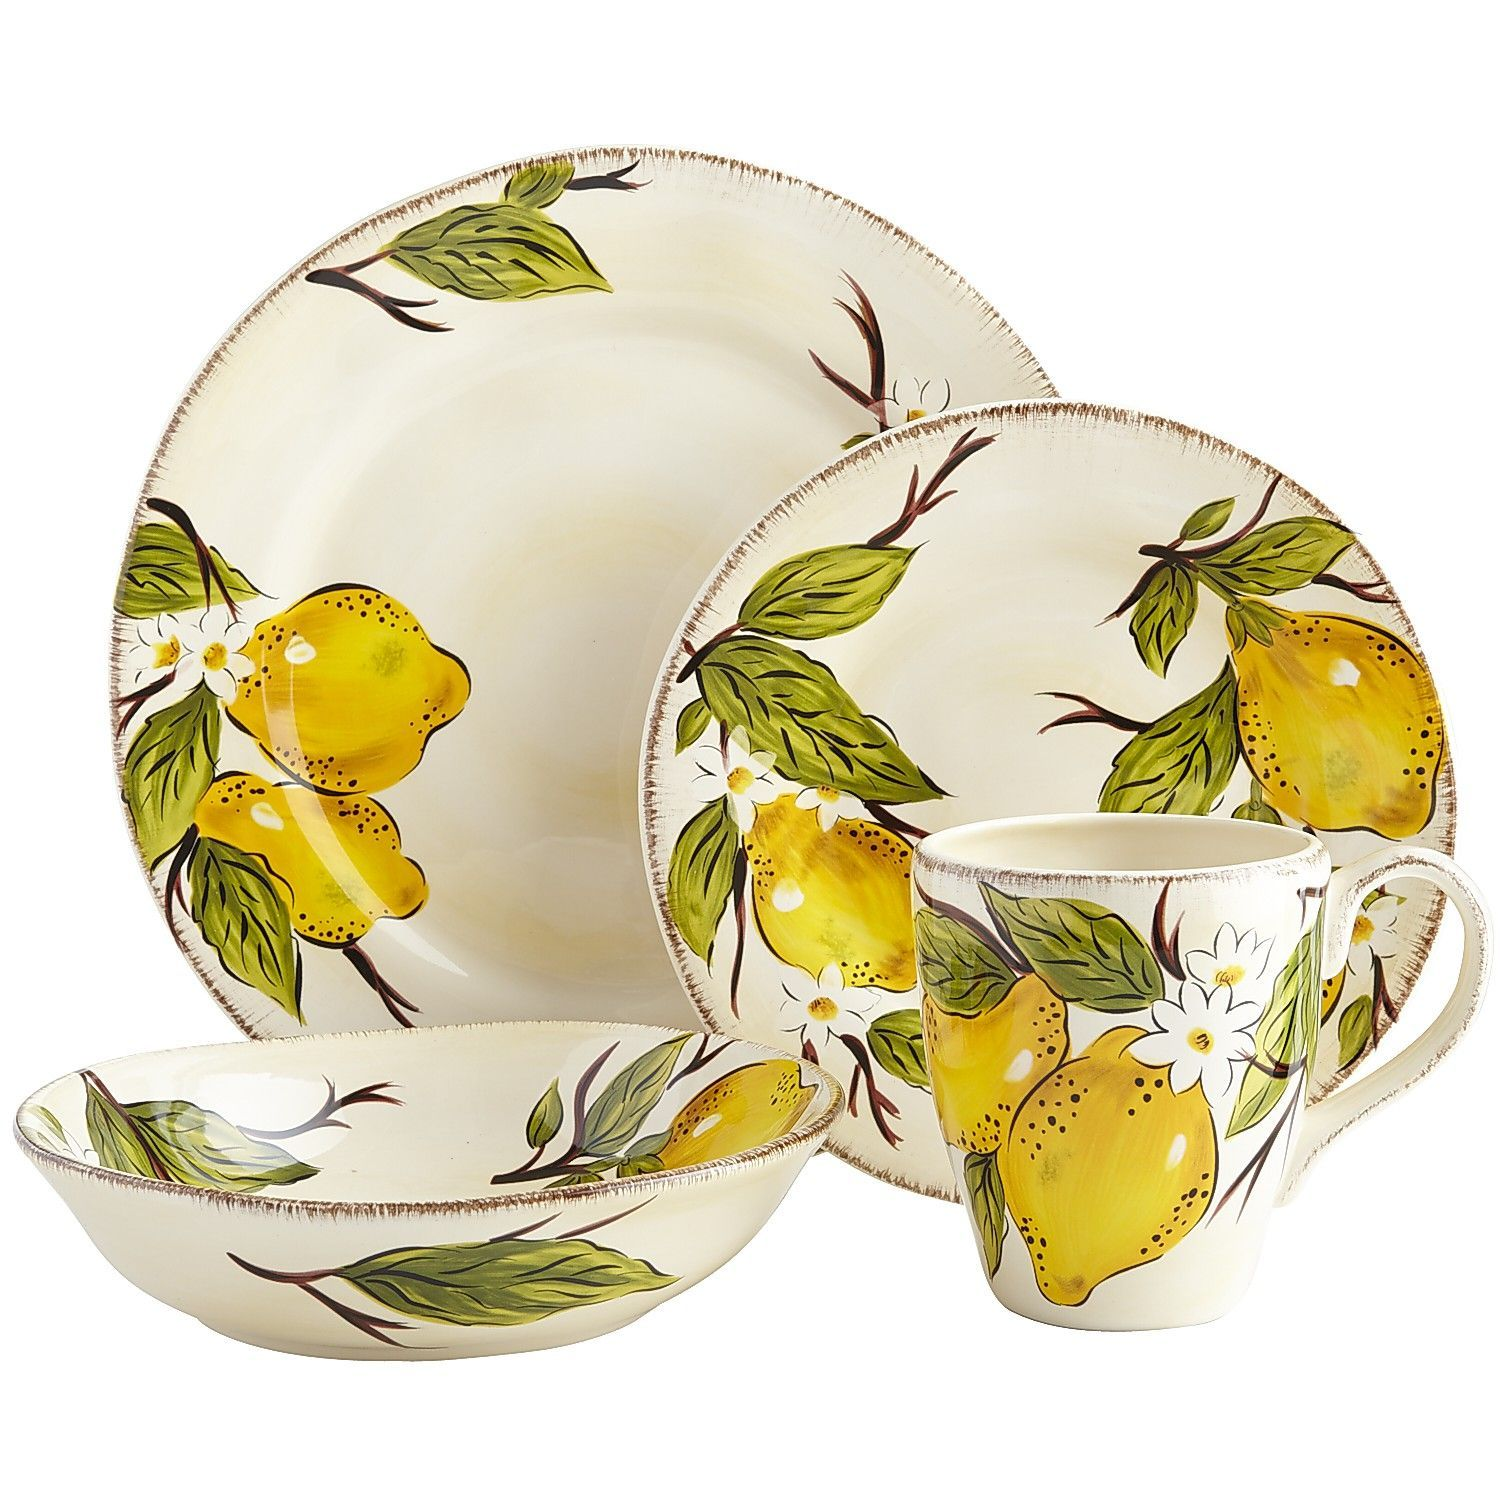 Avalon Dinnerware   LOVE This For Spring/summer Dinnerware!